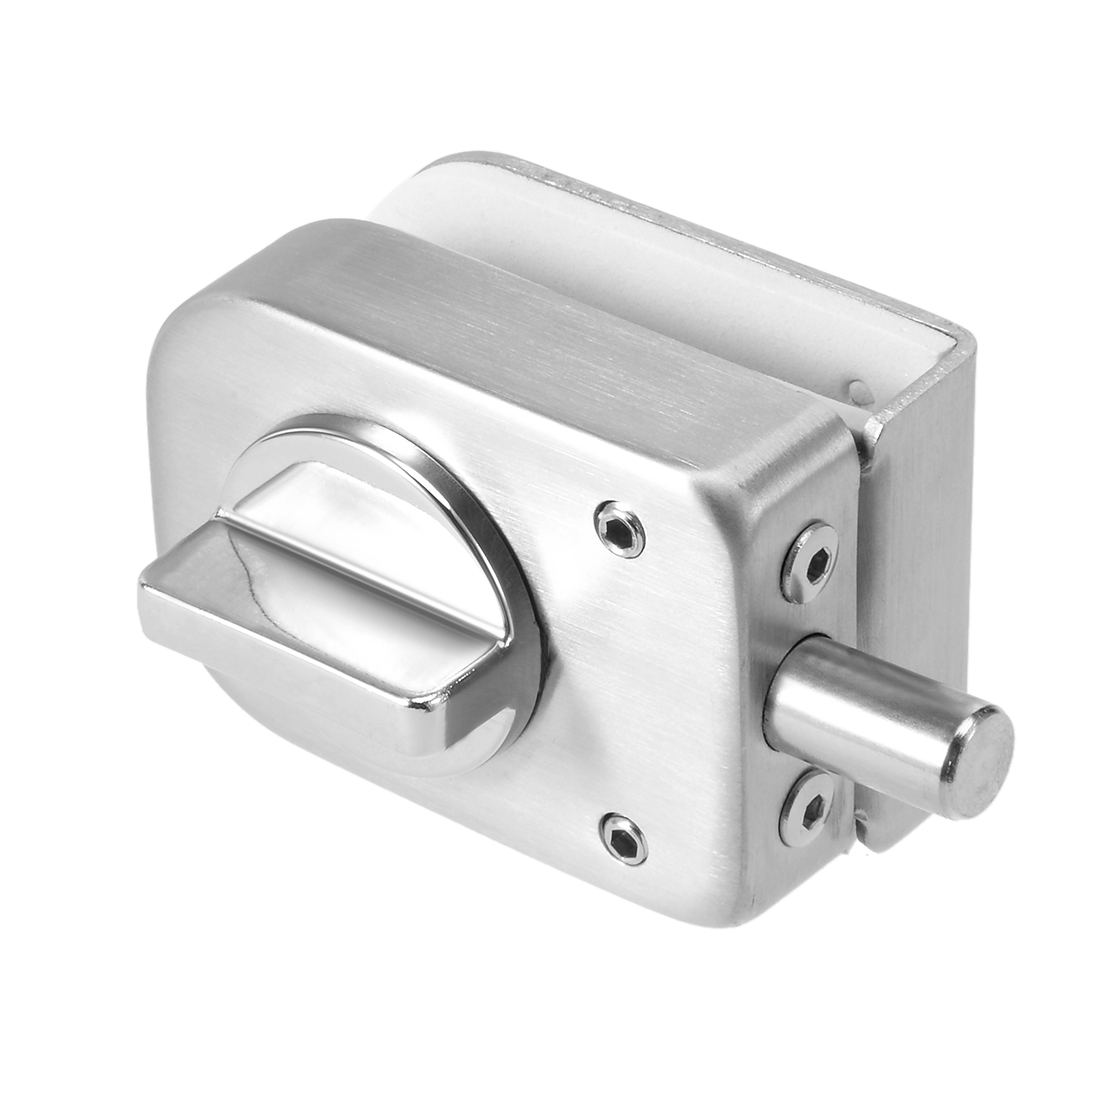 10mm-12mm Glass Door Latch Lock Stainless Steel Brushed Finish